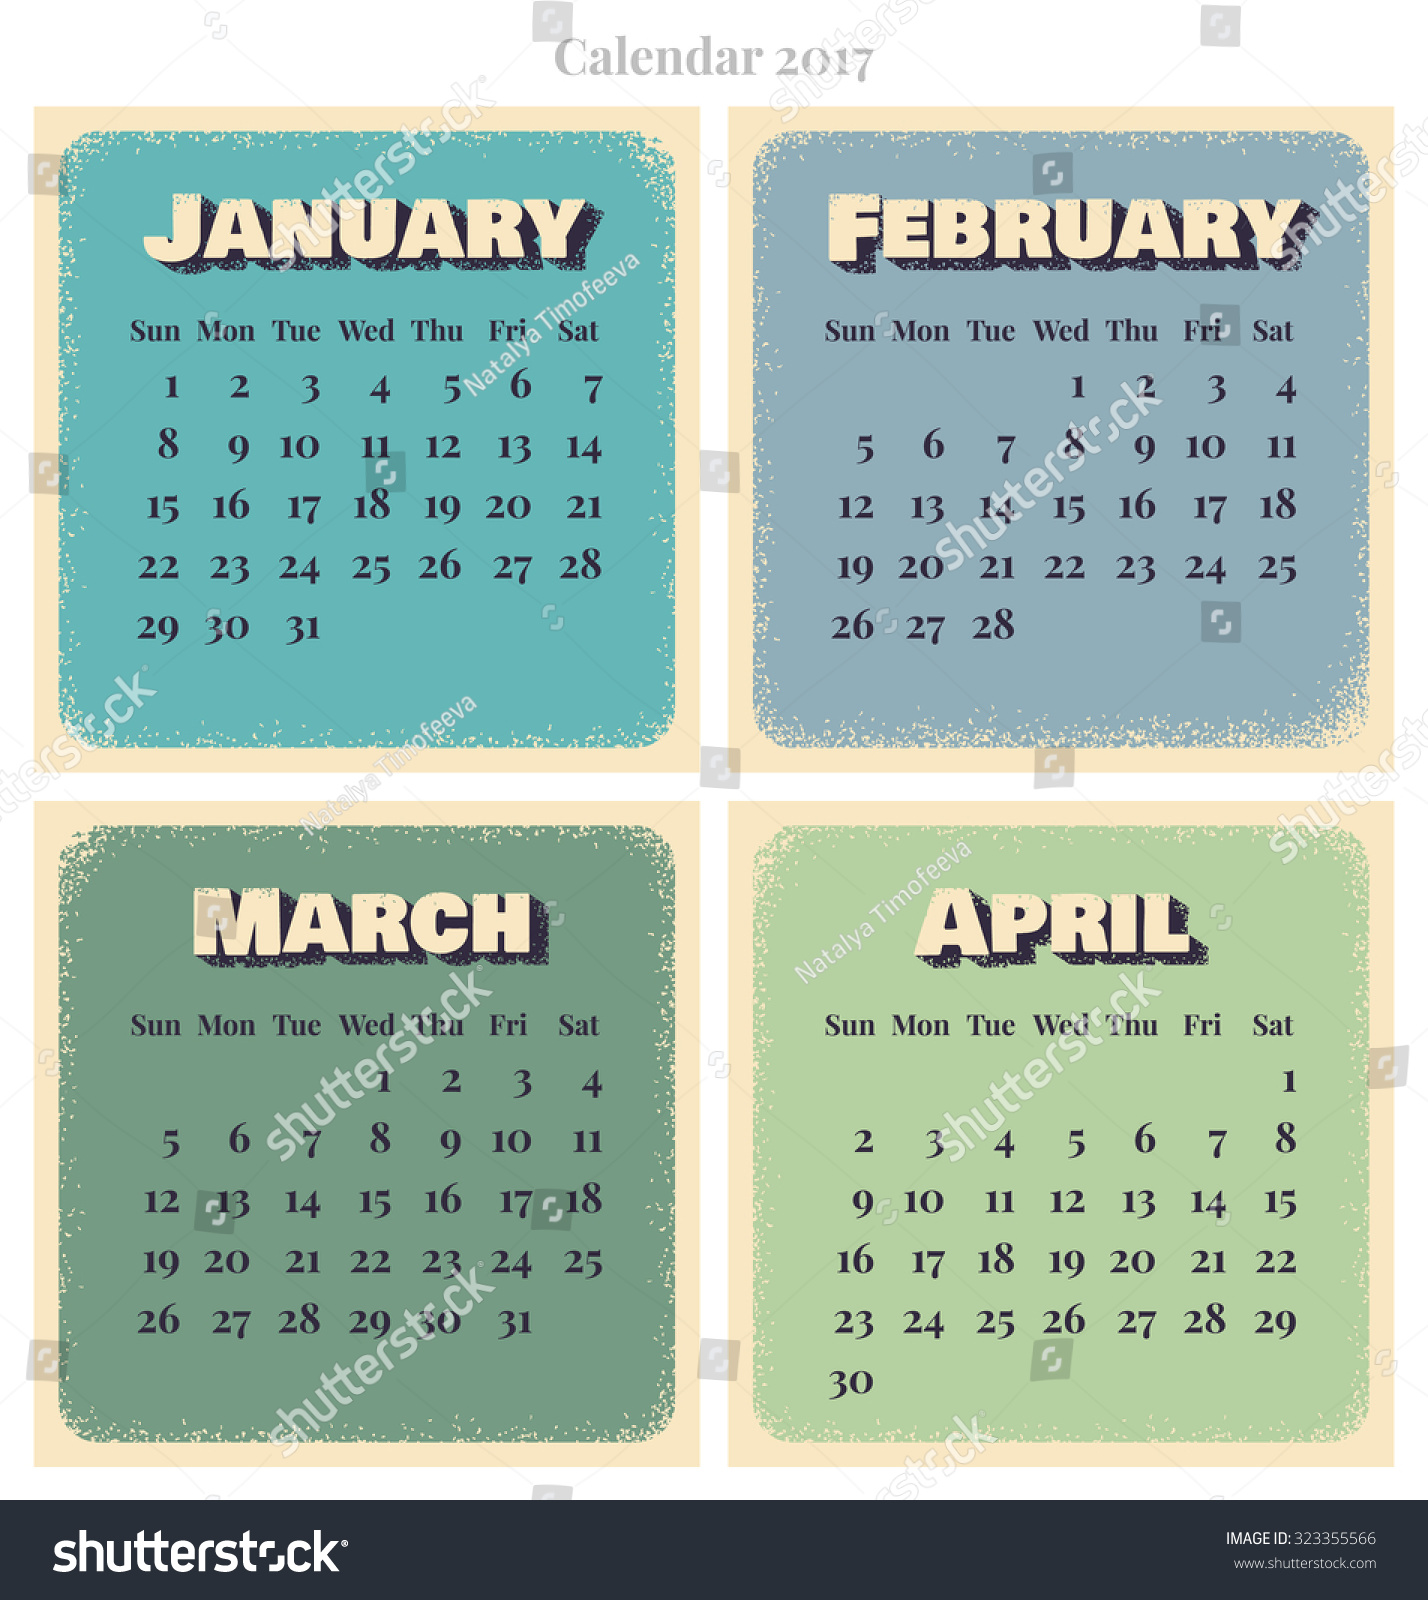 Calendar January April : Retro vector calendar week starts sunday january